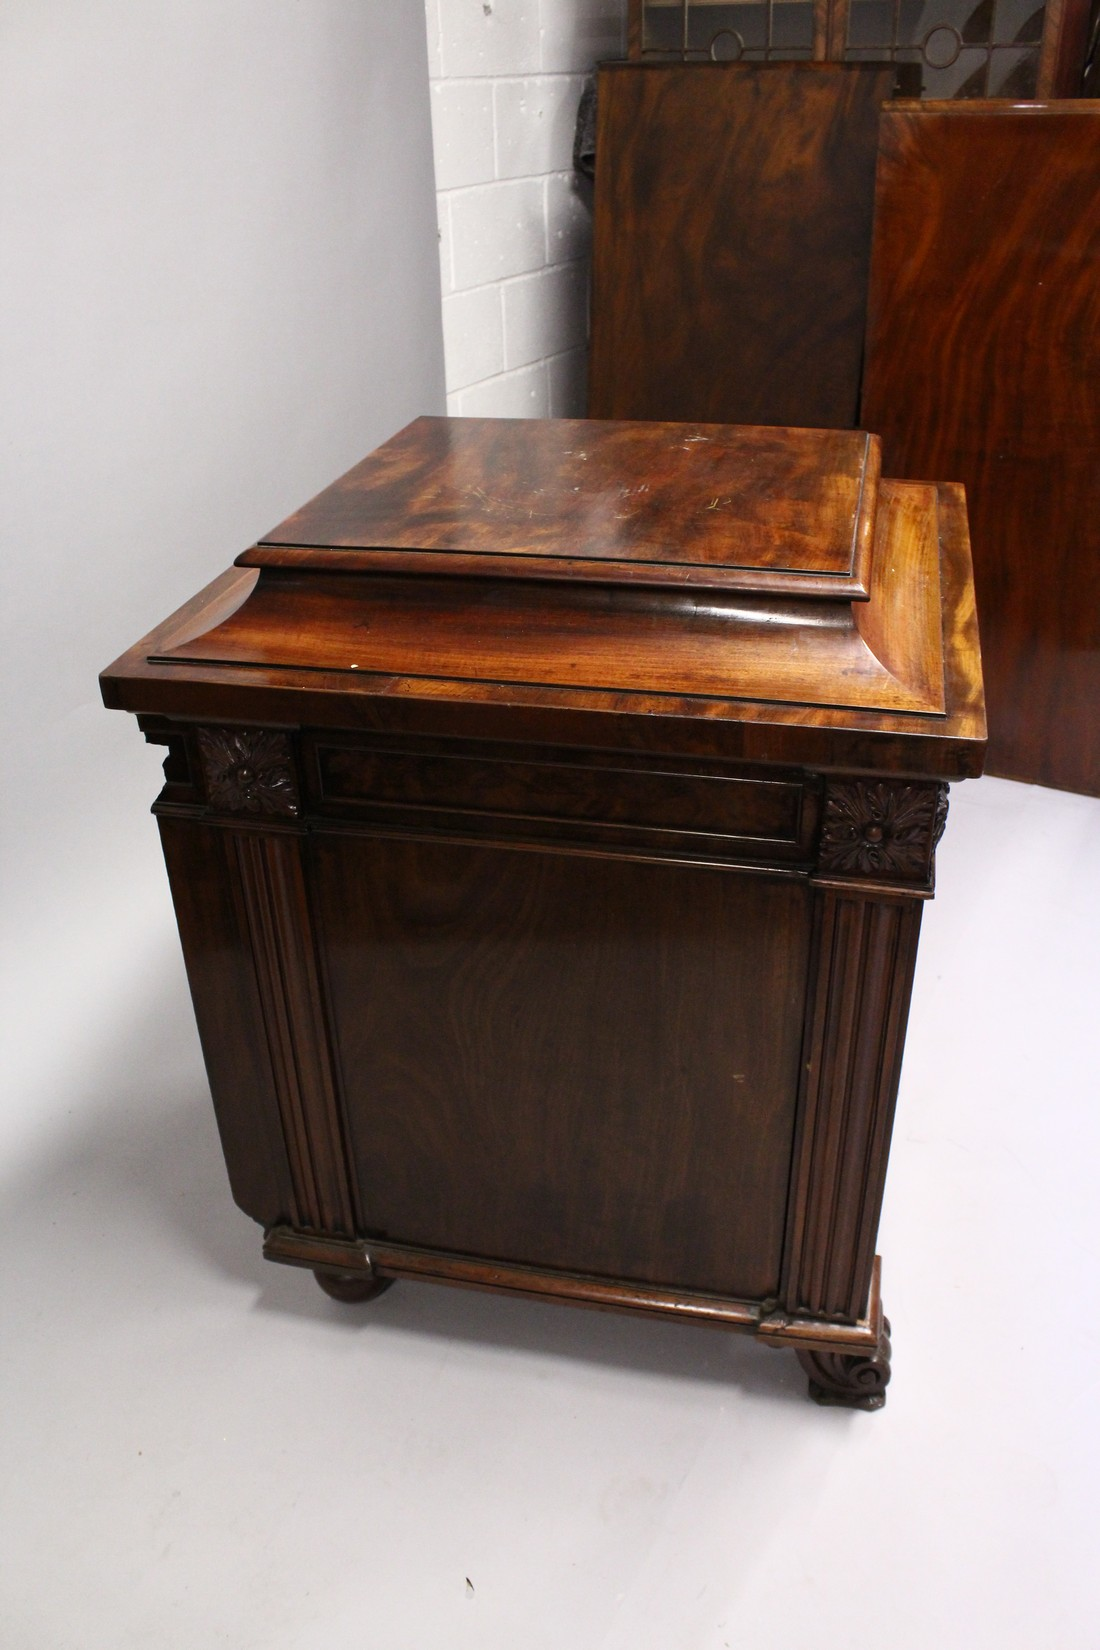 A GOOD 19TH CENTURY MAHOGANY PEDESTAL CUPBOARD, with a concave moulded top, panelled frieze with - Image 3 of 8